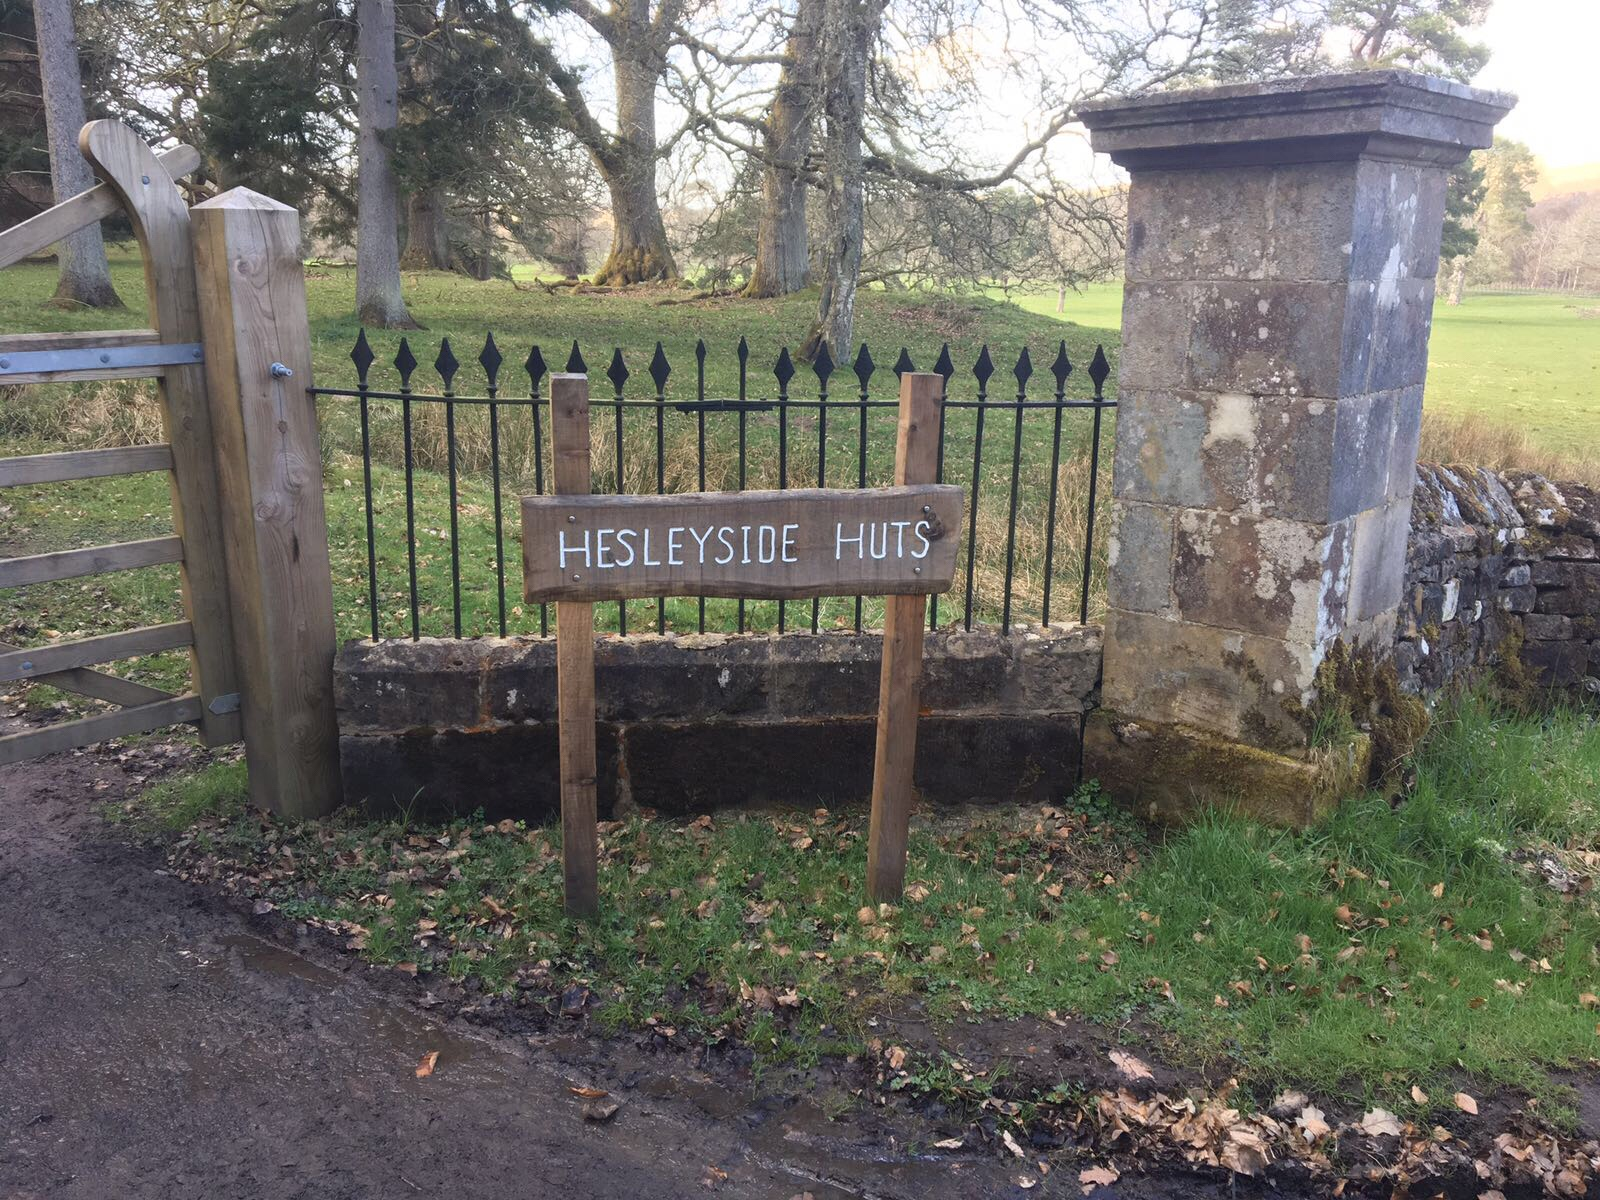 The entrance gate to Hesleyside Huts